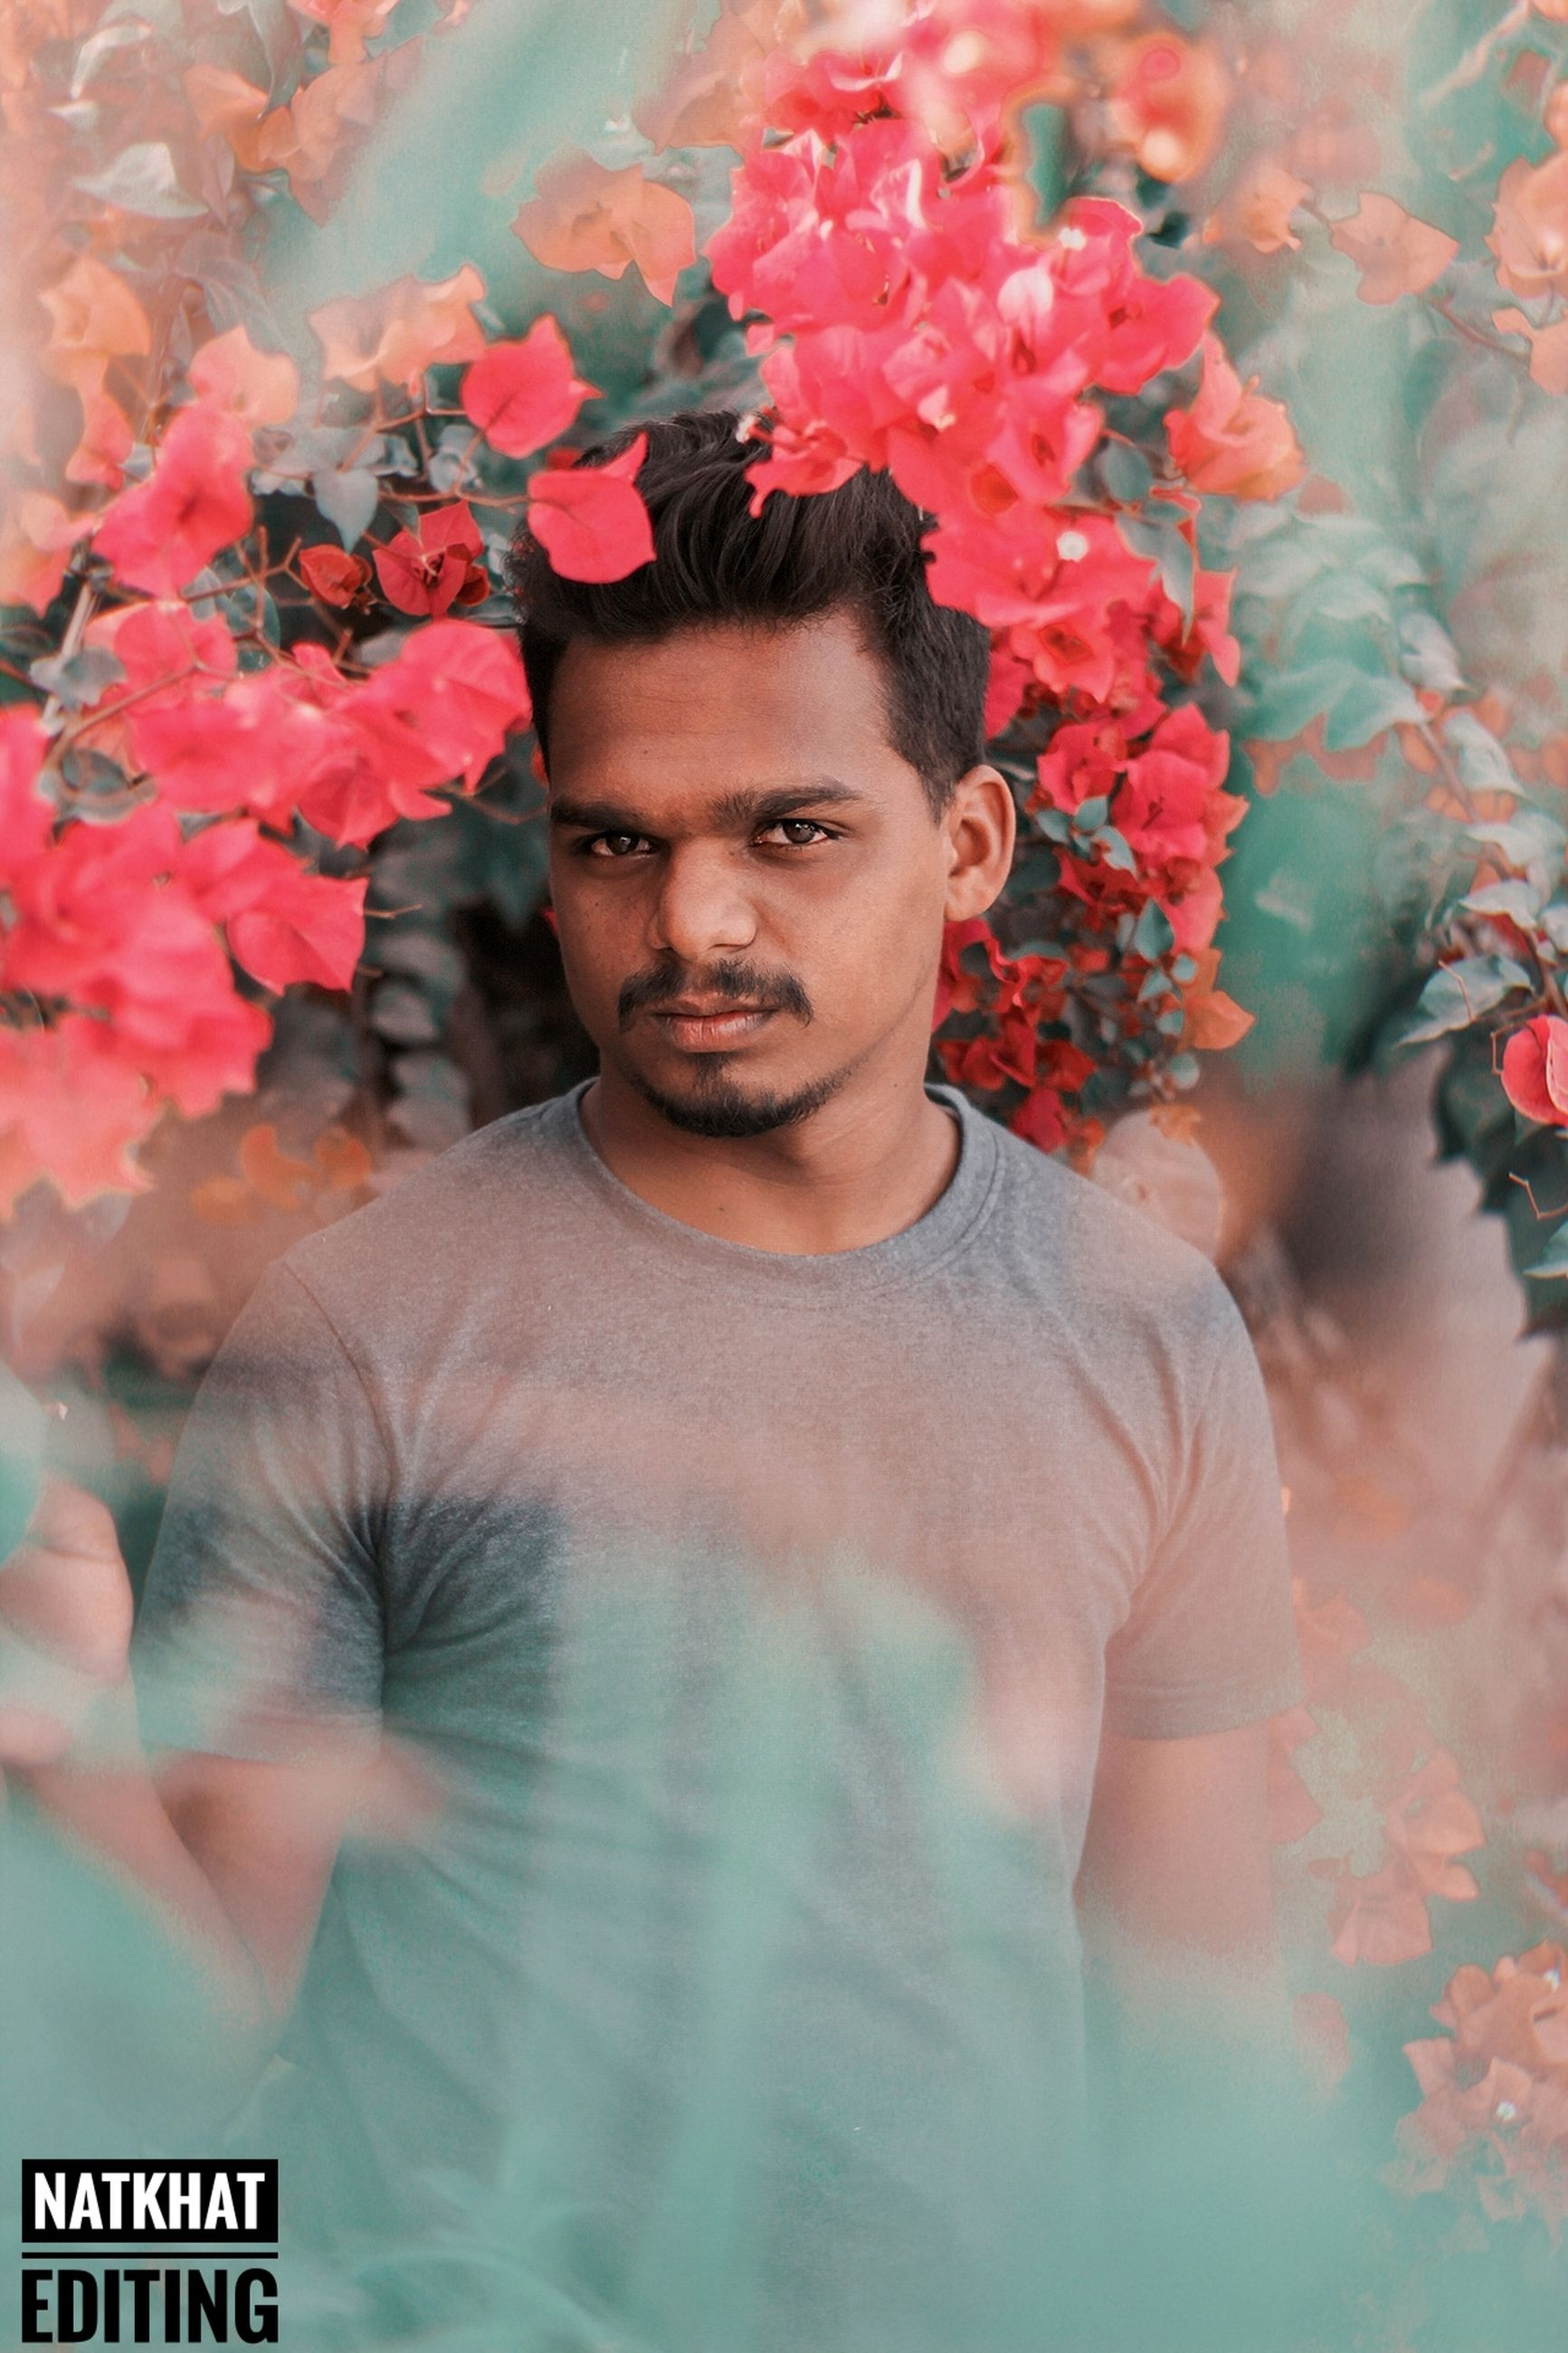 young men, one person, young adult, flower, plant, flowering plant, front view, portrait, lifestyles, real people, casual clothing, looking at camera, leisure activity, standing, waist up, nature, growth, focus on foreground, outdoors, contemplation